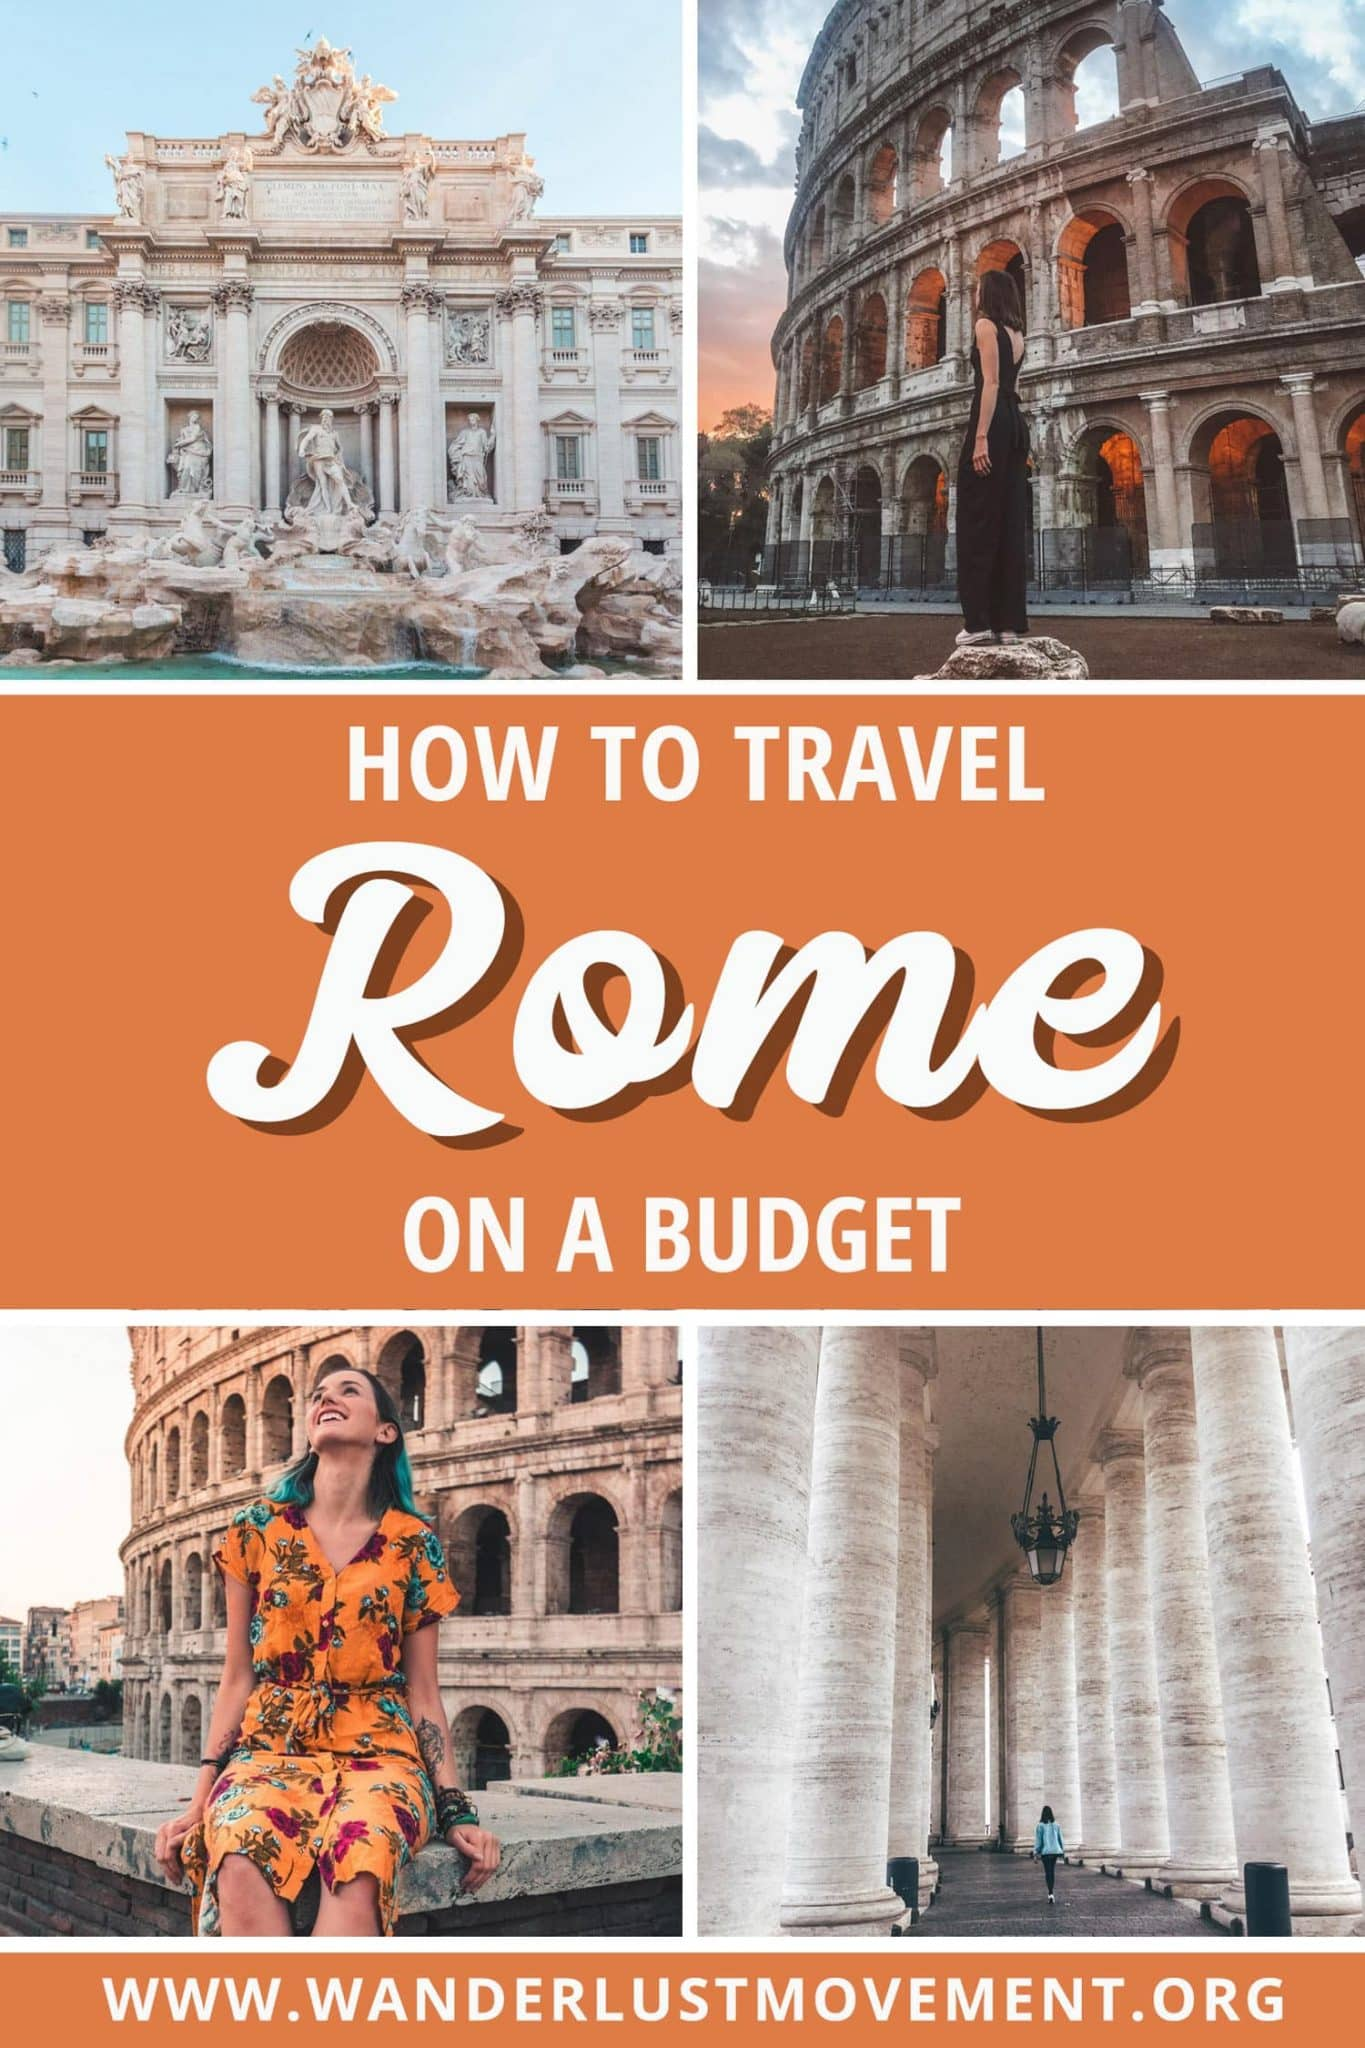 How To Travel Rome on a Budget (& Still See the Top Sights!)